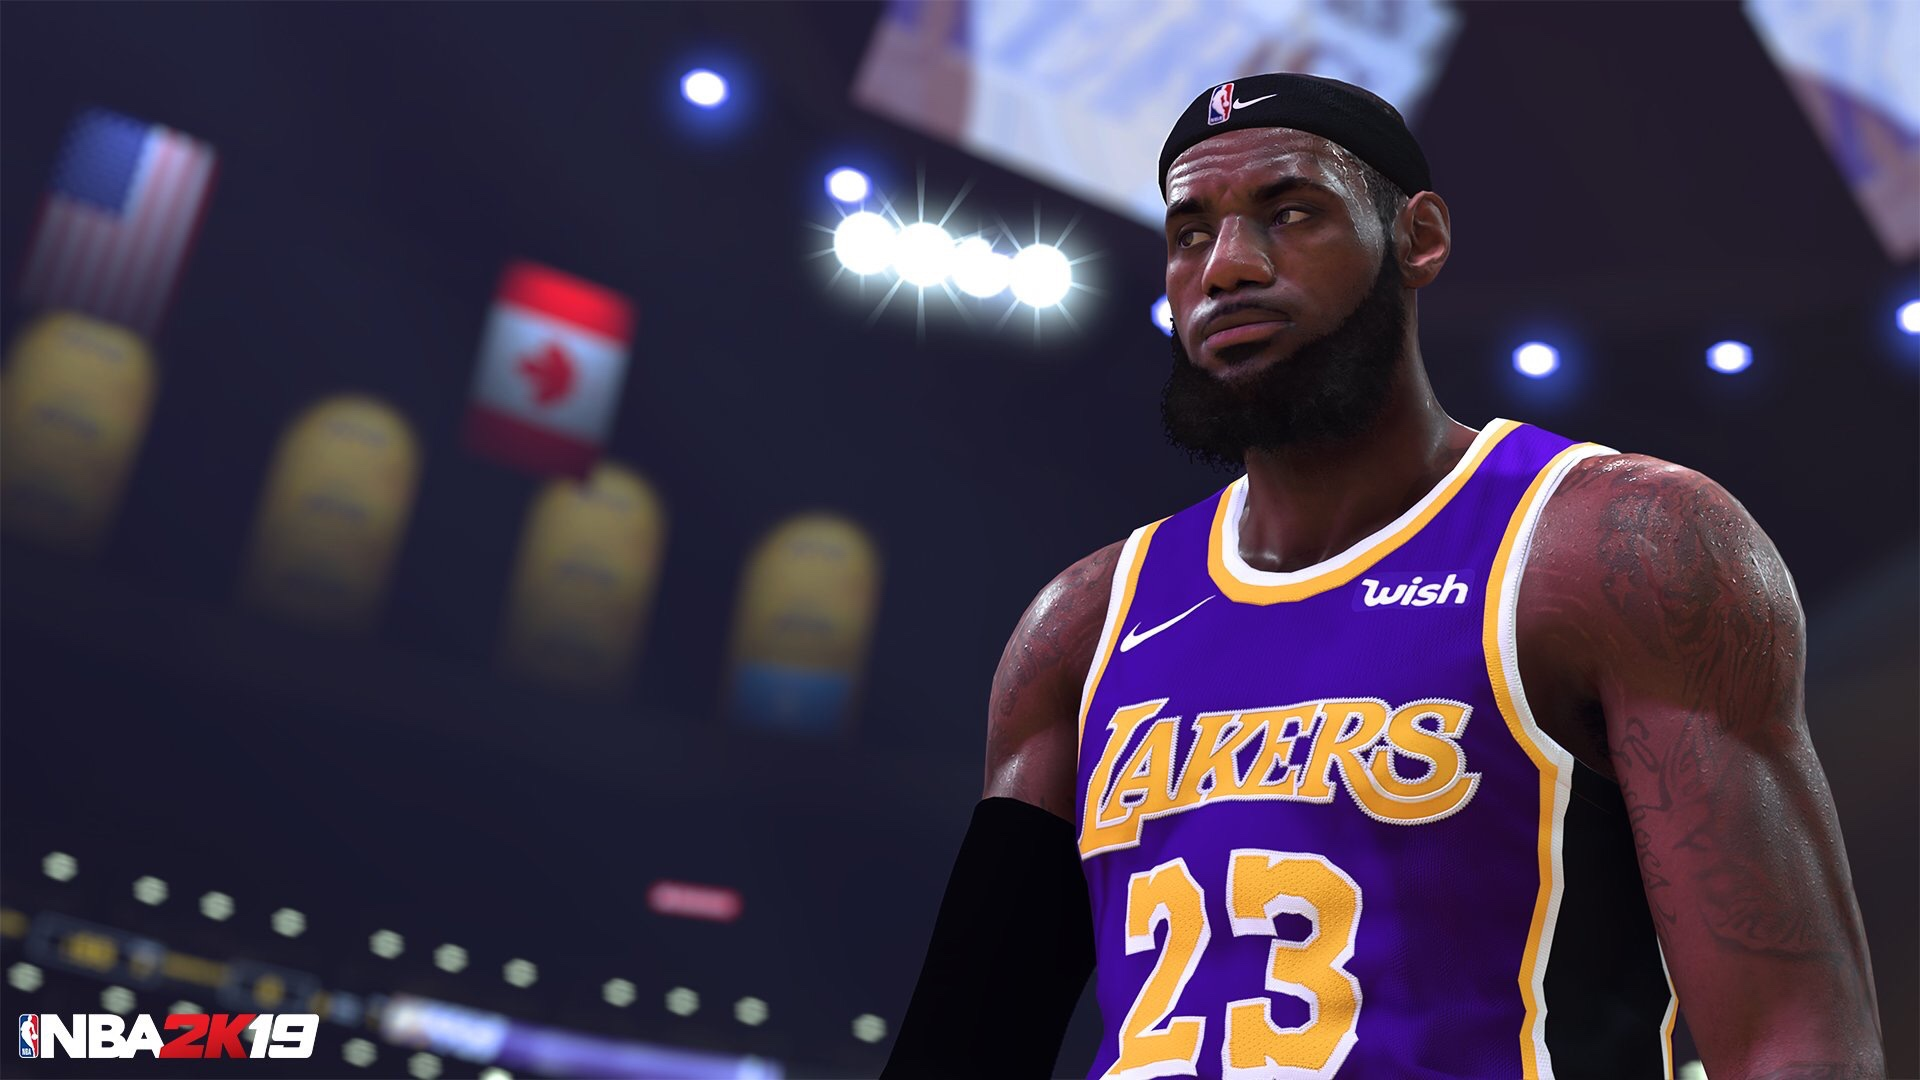 OFFICIAL NBA 2K19 Roster Update Thread (No Ratings Discussion